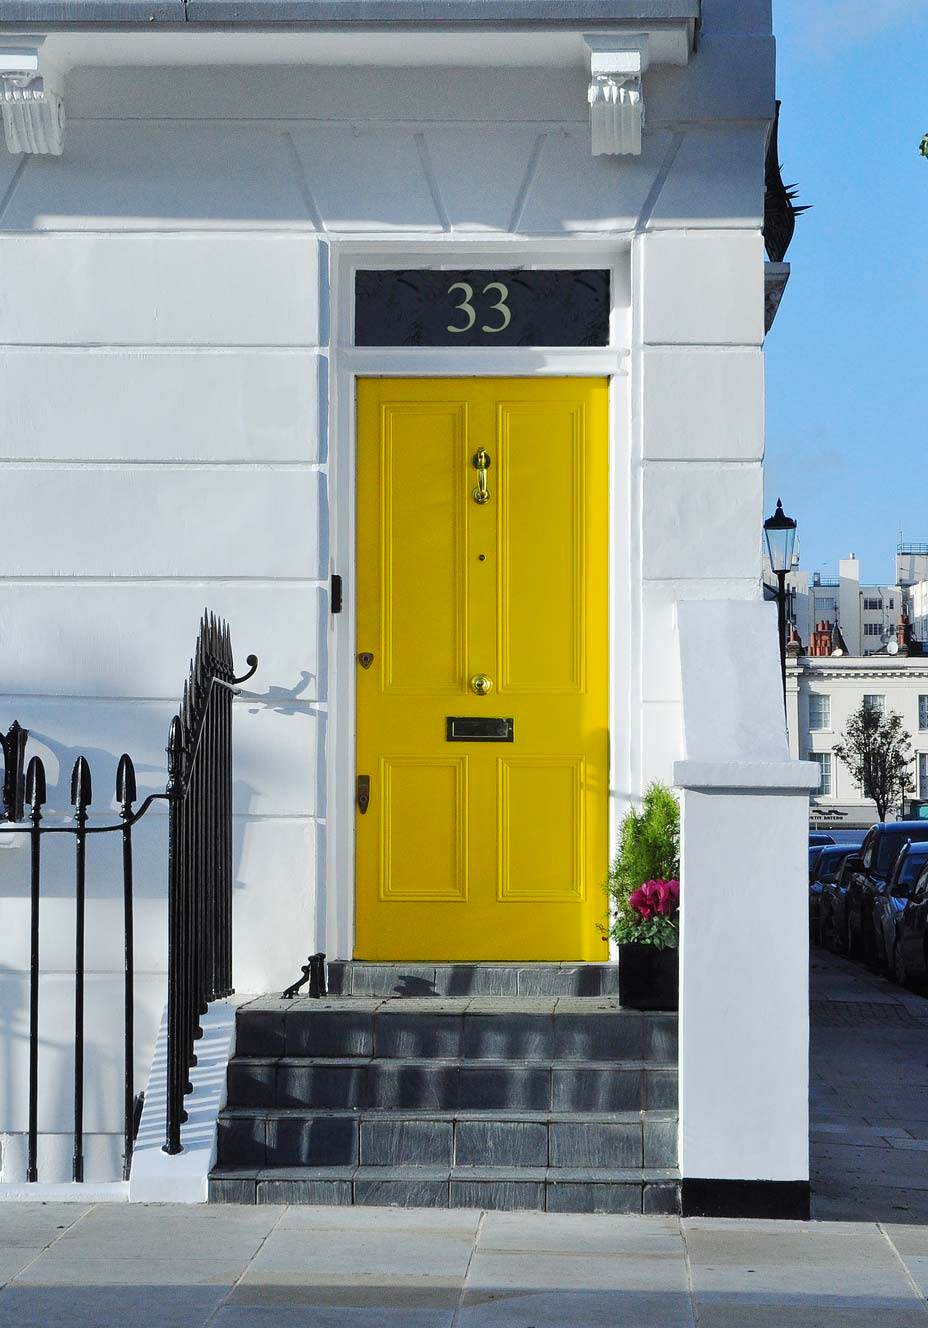 33 Property Services -  Oxford, Windsor, London - The Royal Borough of Kensington and Chelsea Specialists